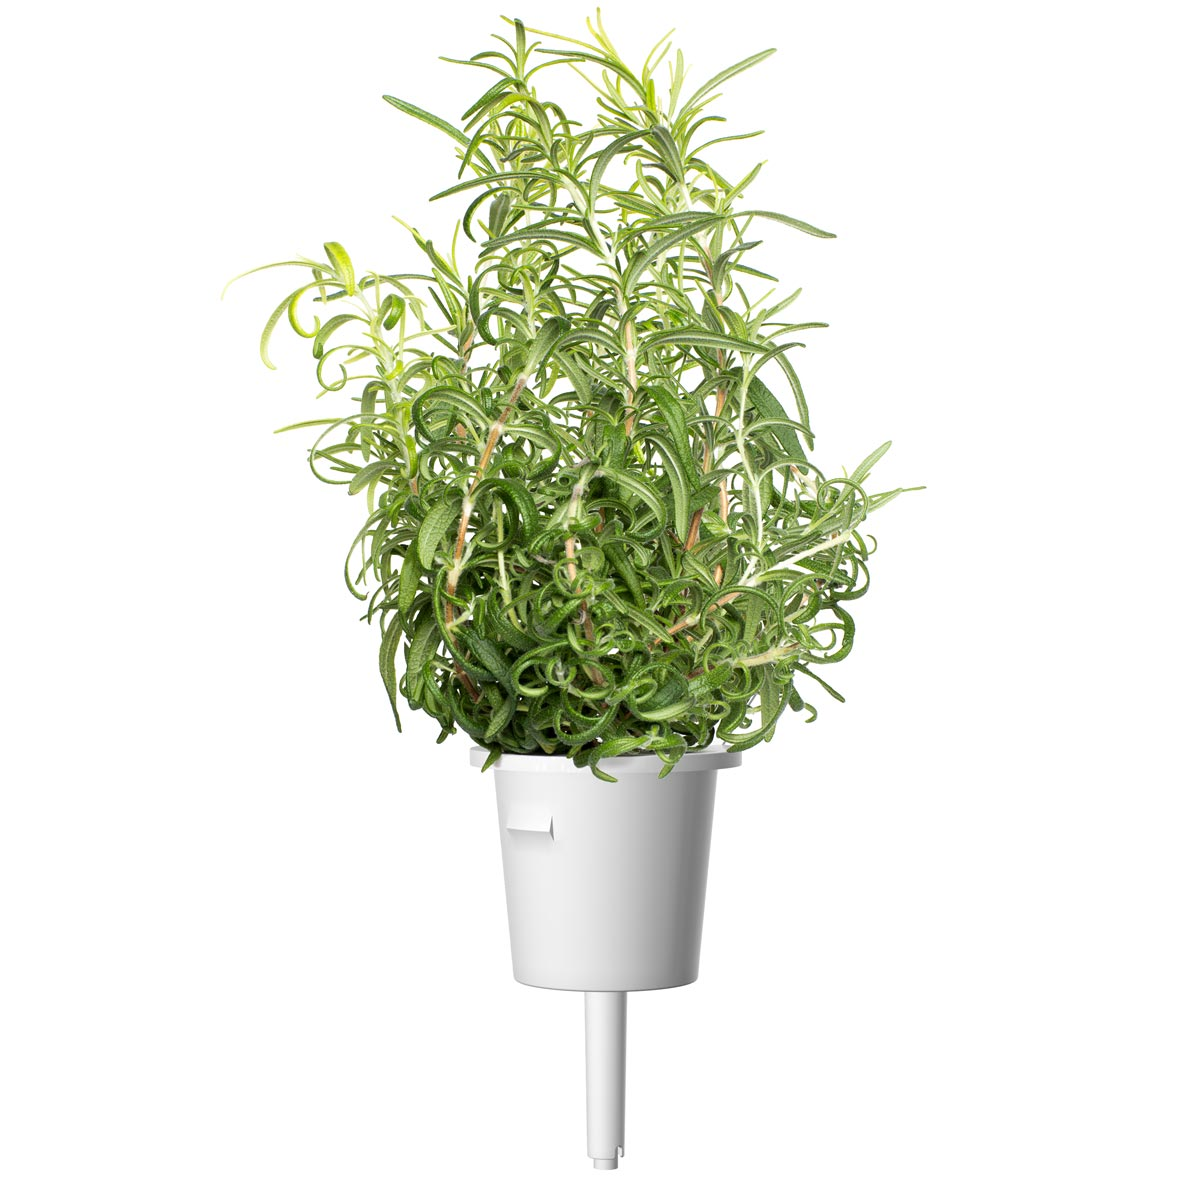 Plant pod. Growing rosemary (Rosmarinus officinalis) using Click & Grow's indoor garden. Cooking with Rosemary and Rosemary Oil Benefits.